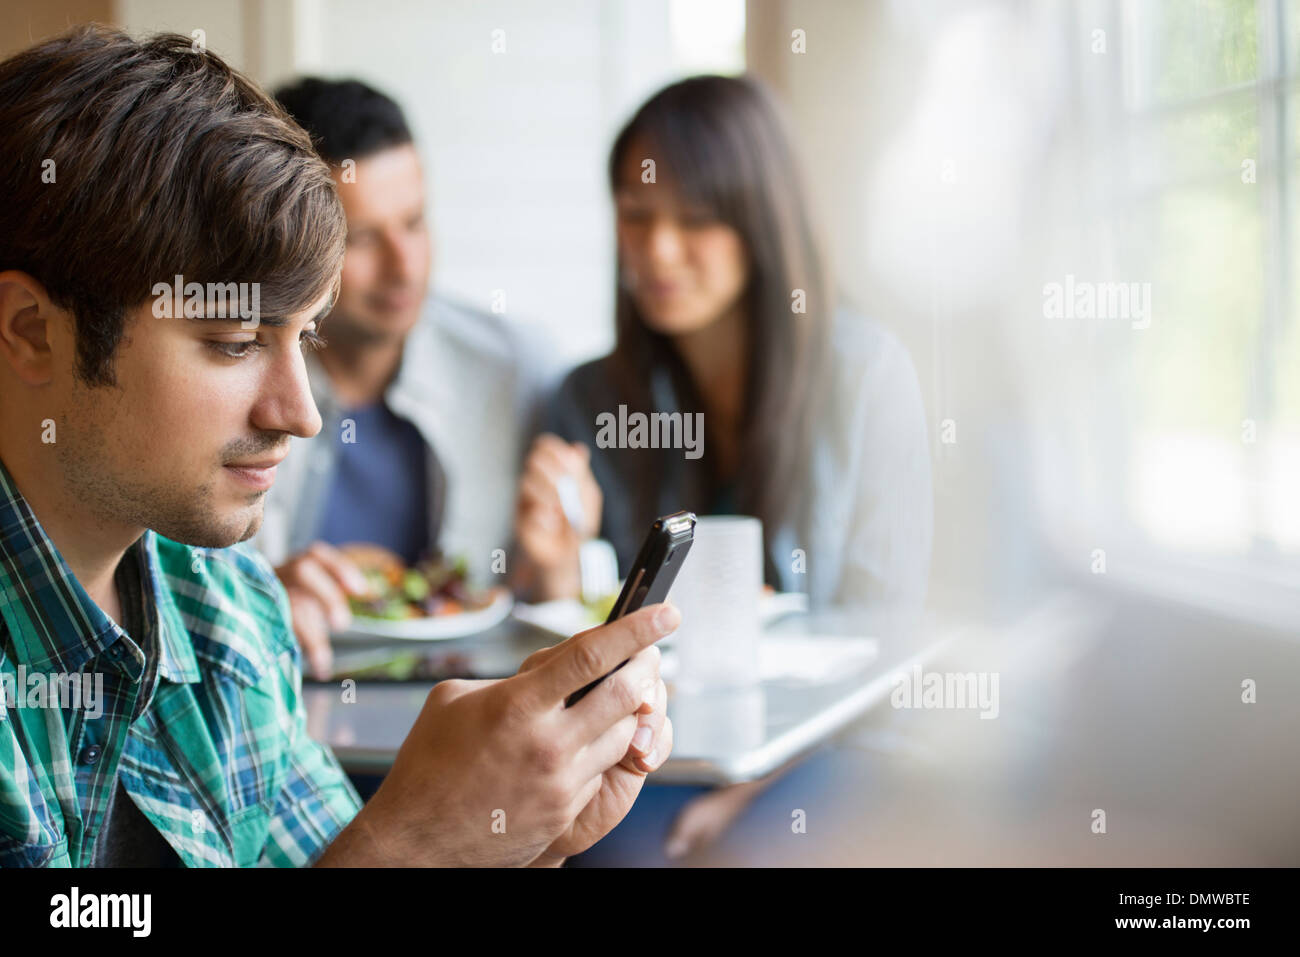 Three people seated at a cafe table. - Stock Image